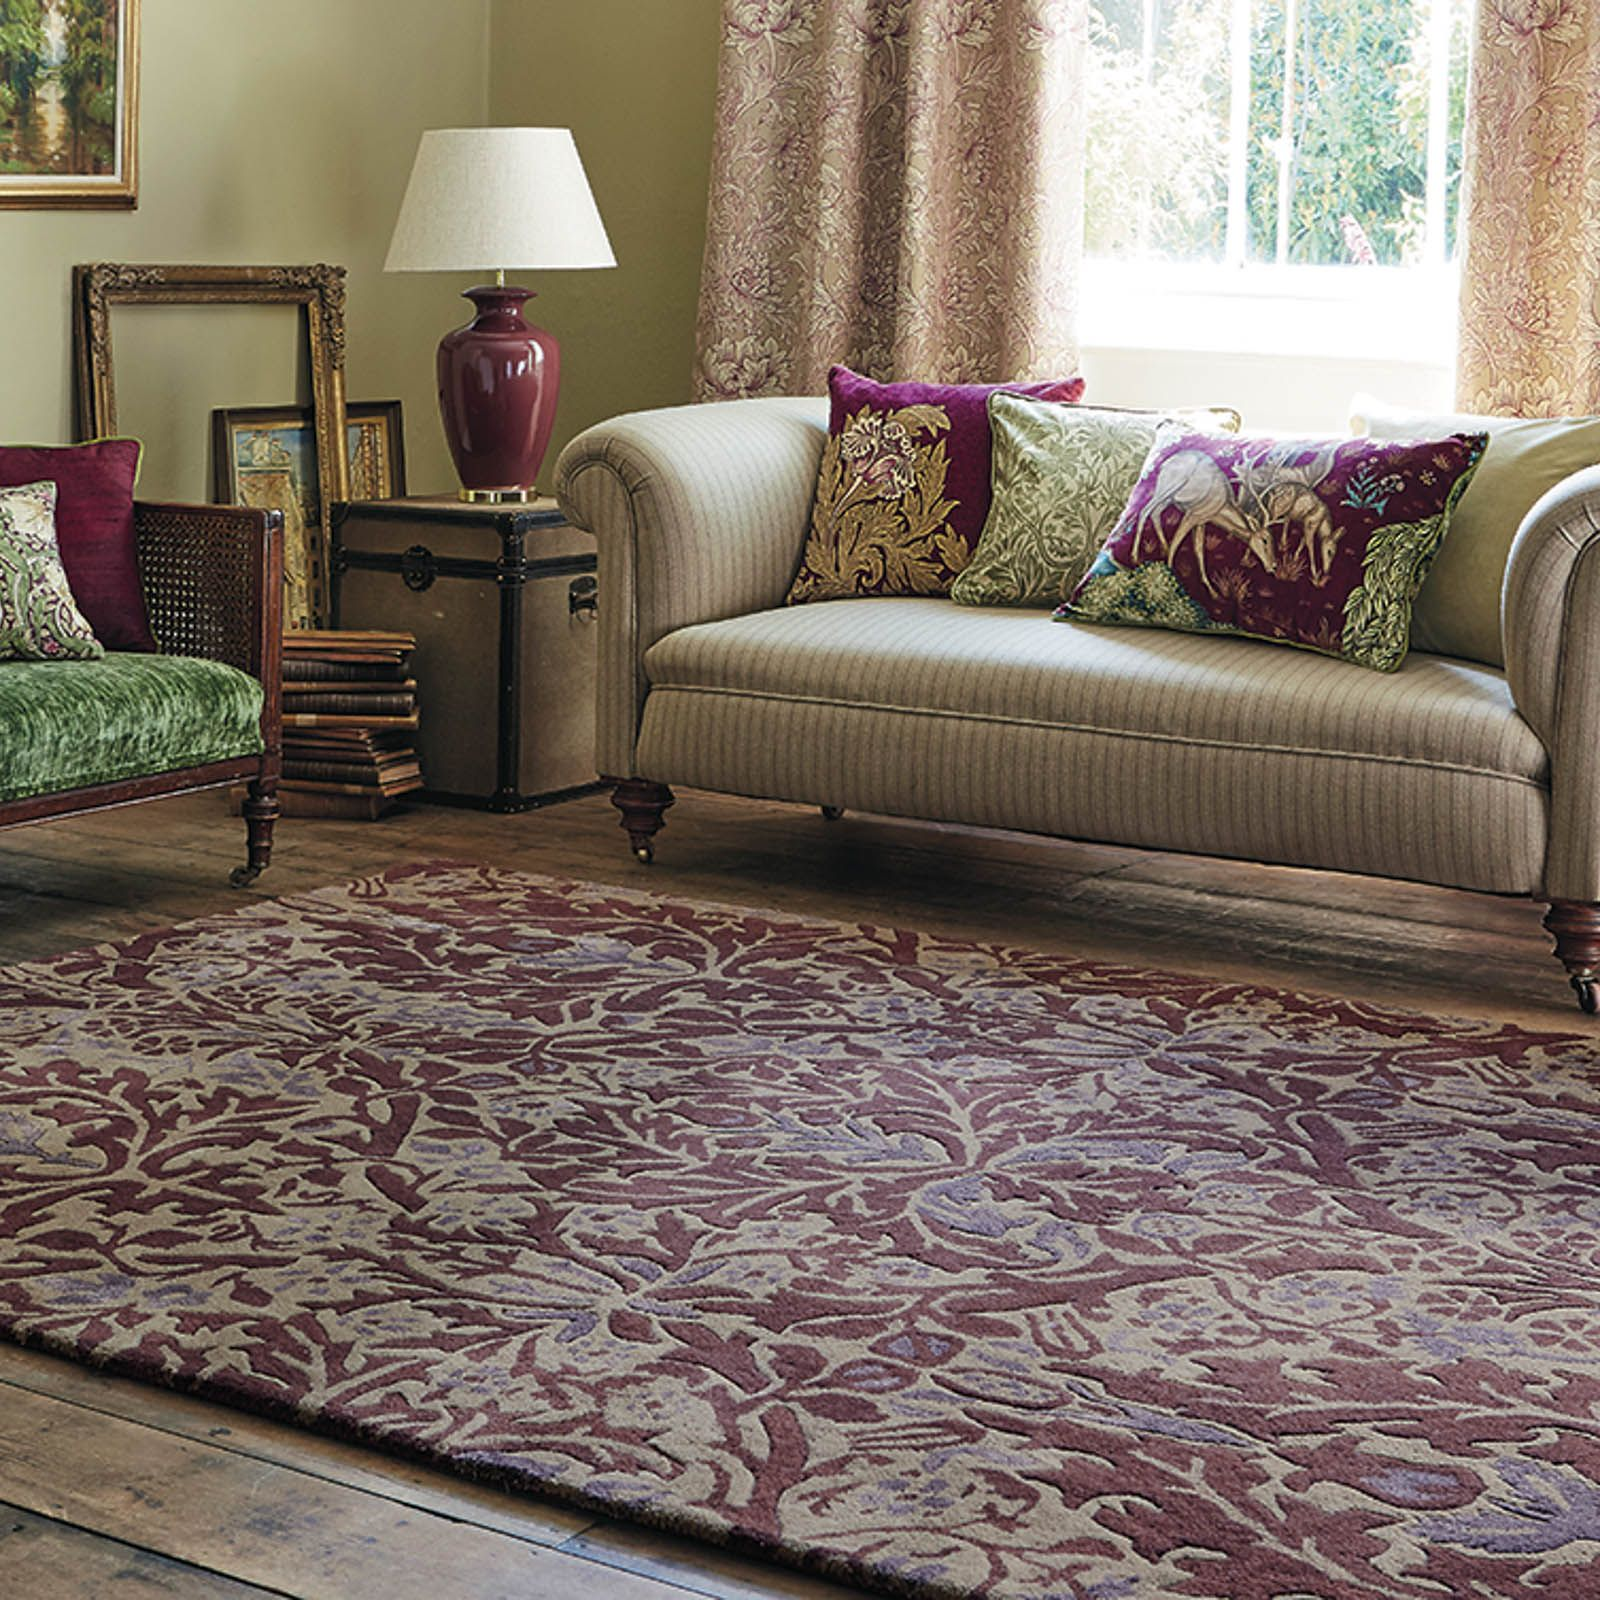 Autumn Flowers Rugs 27500 In Plum By William Morris140x200cm